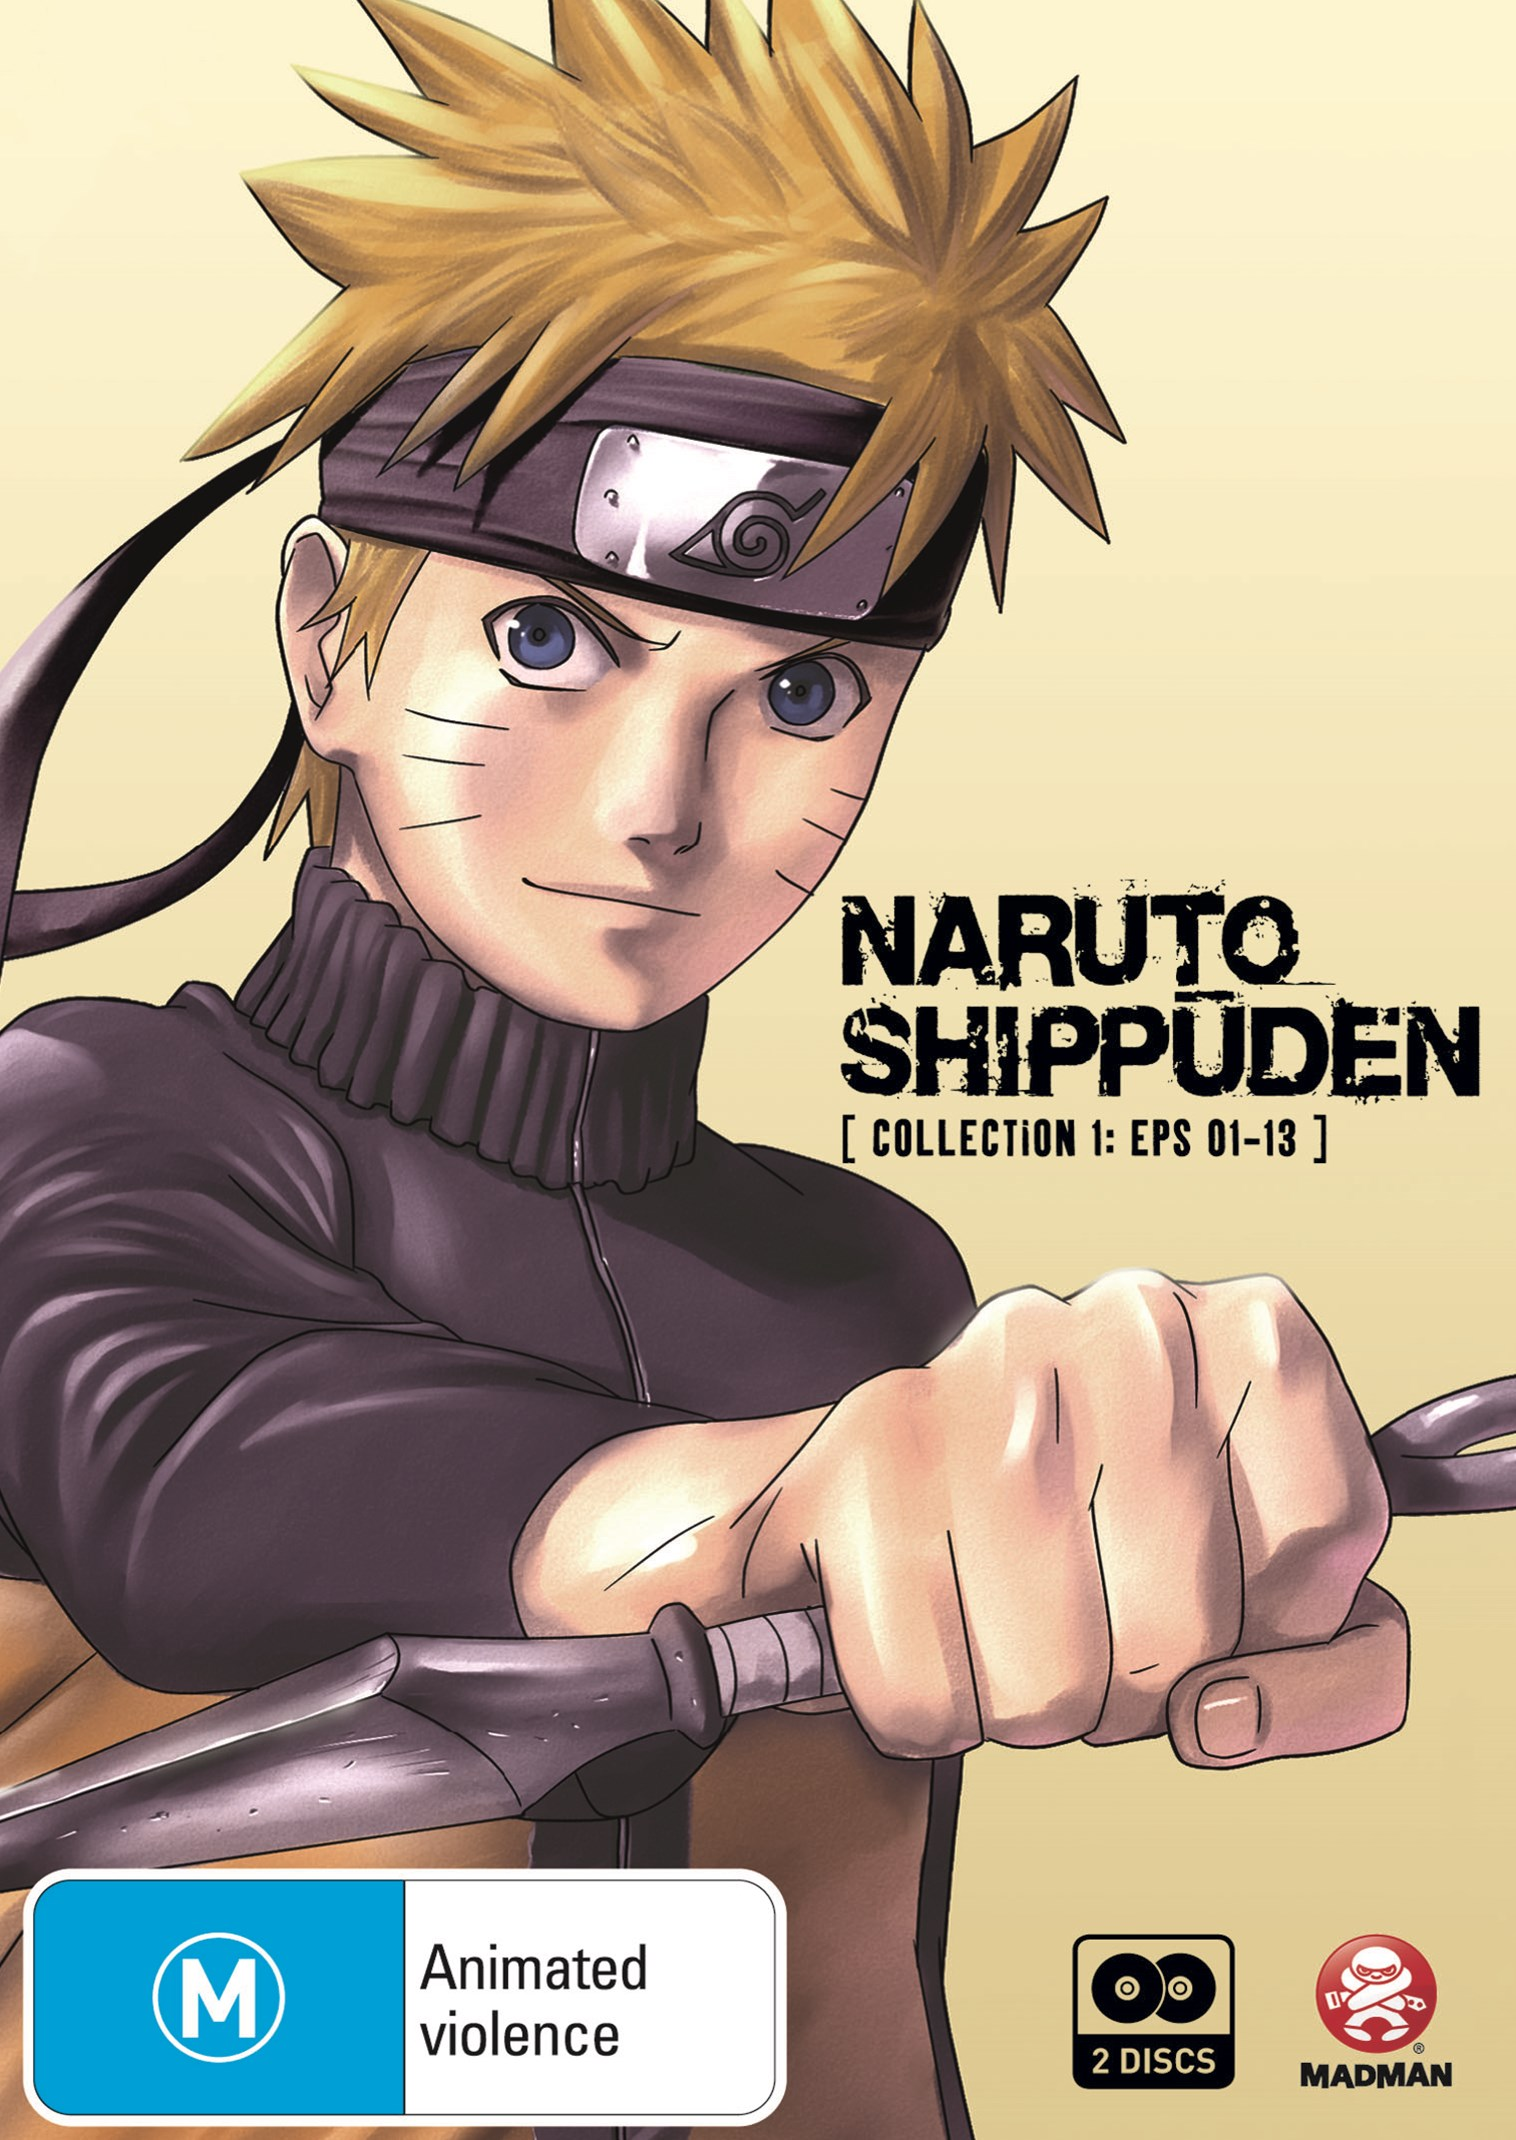 Naruto Shippuden: Collection 1 (Eps 1 to 13)